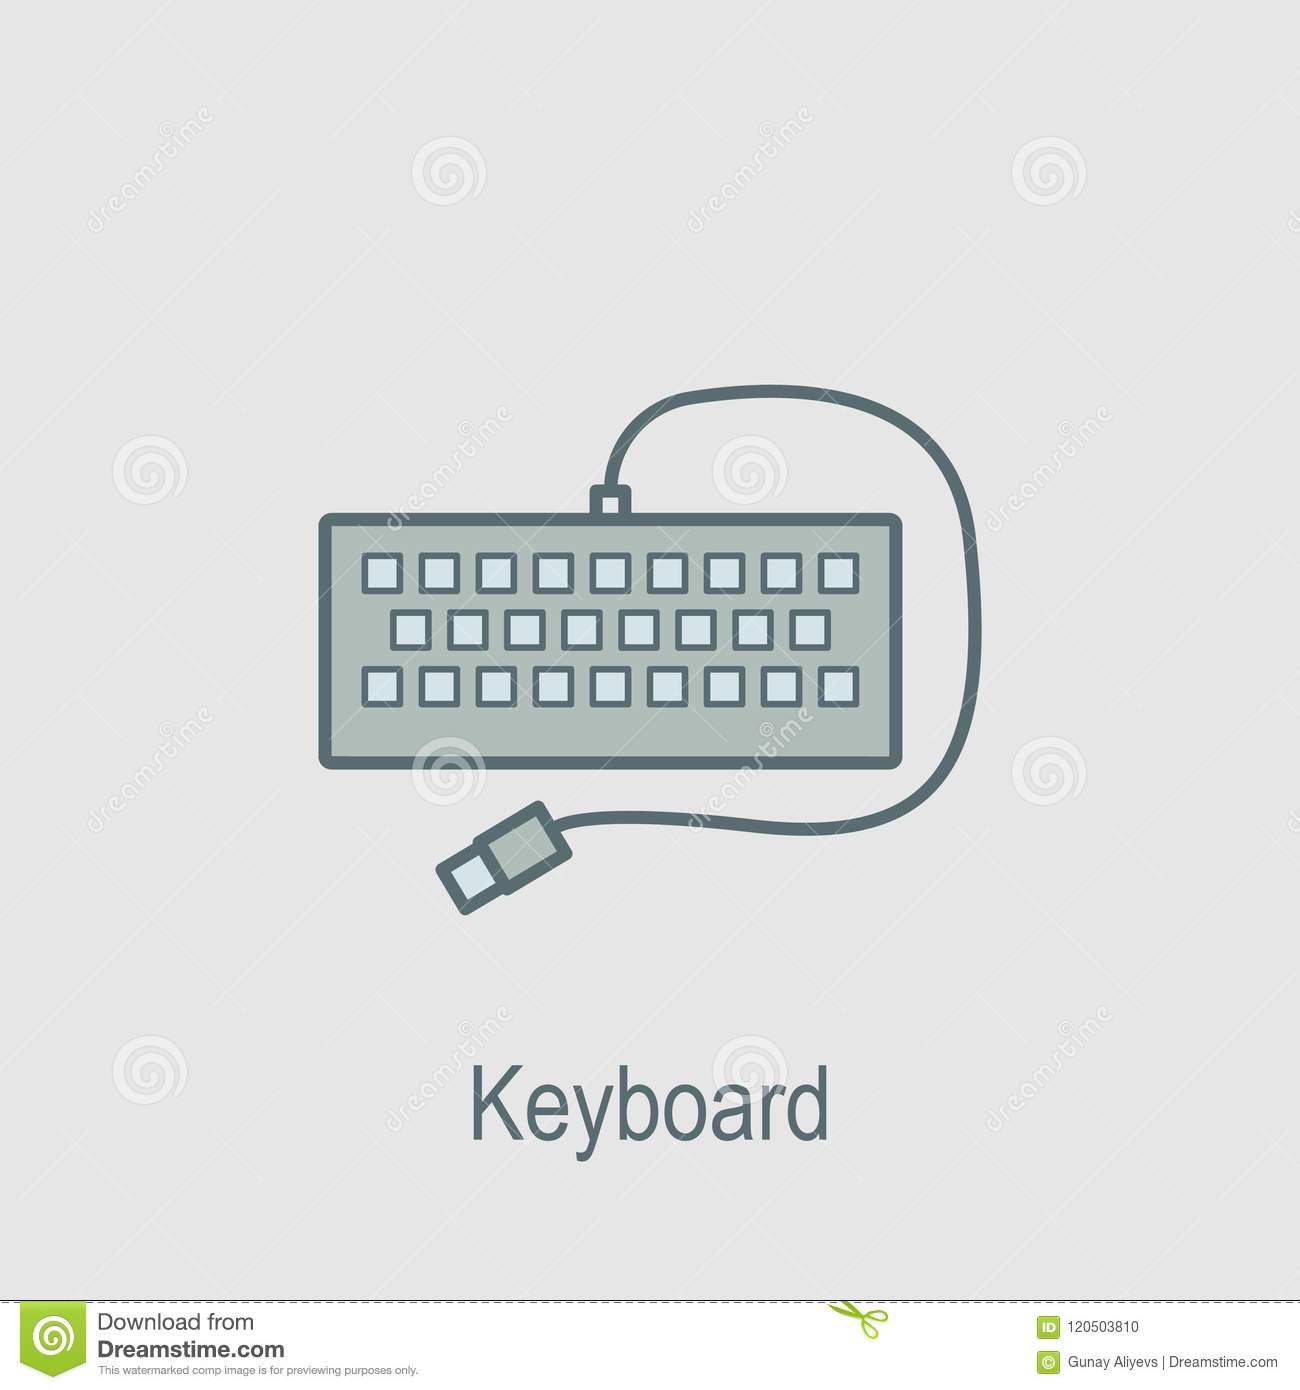 Keyboard Icon Element Of Computer Parts With Name Icon For Mobile Concept And Web Apps Filled Outline Keyboard Icon Can Be Used Stock Illustration Illustration Of Button Symbol 120503810